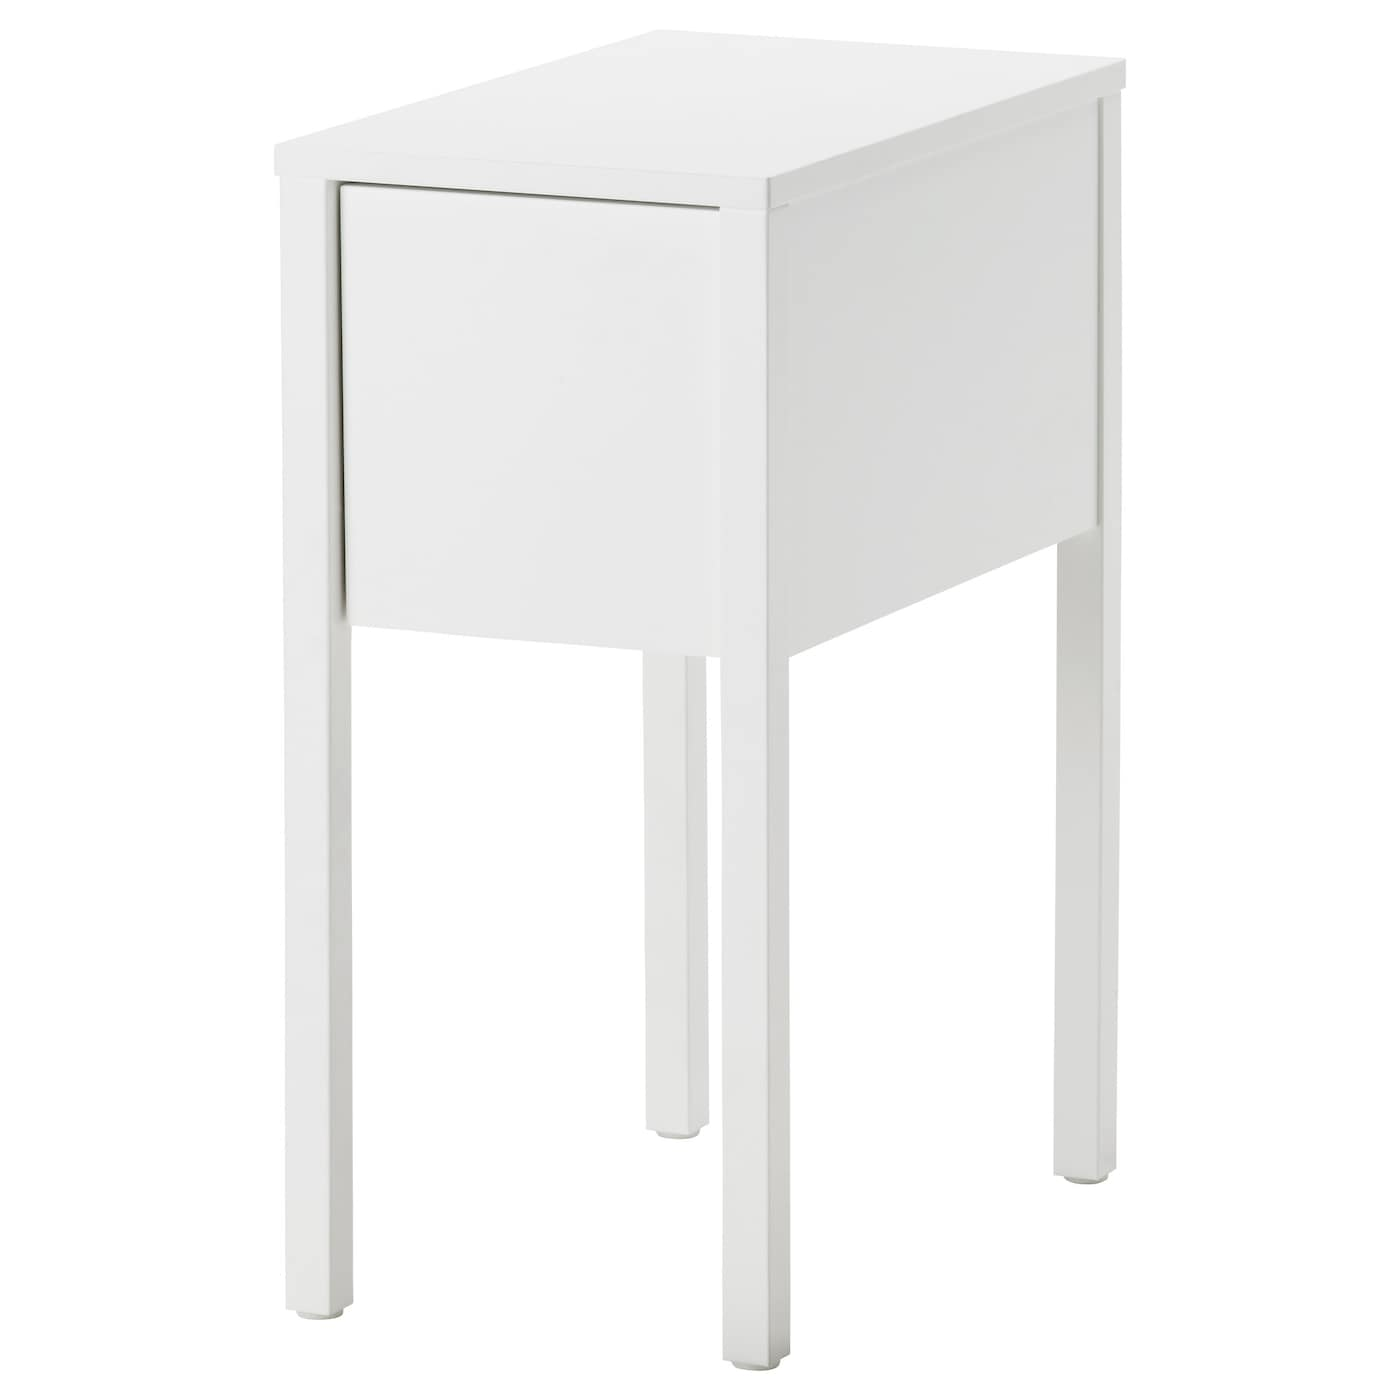 nordli table de chevet blanc 30x50 cm ikea. Black Bedroom Furniture Sets. Home Design Ideas